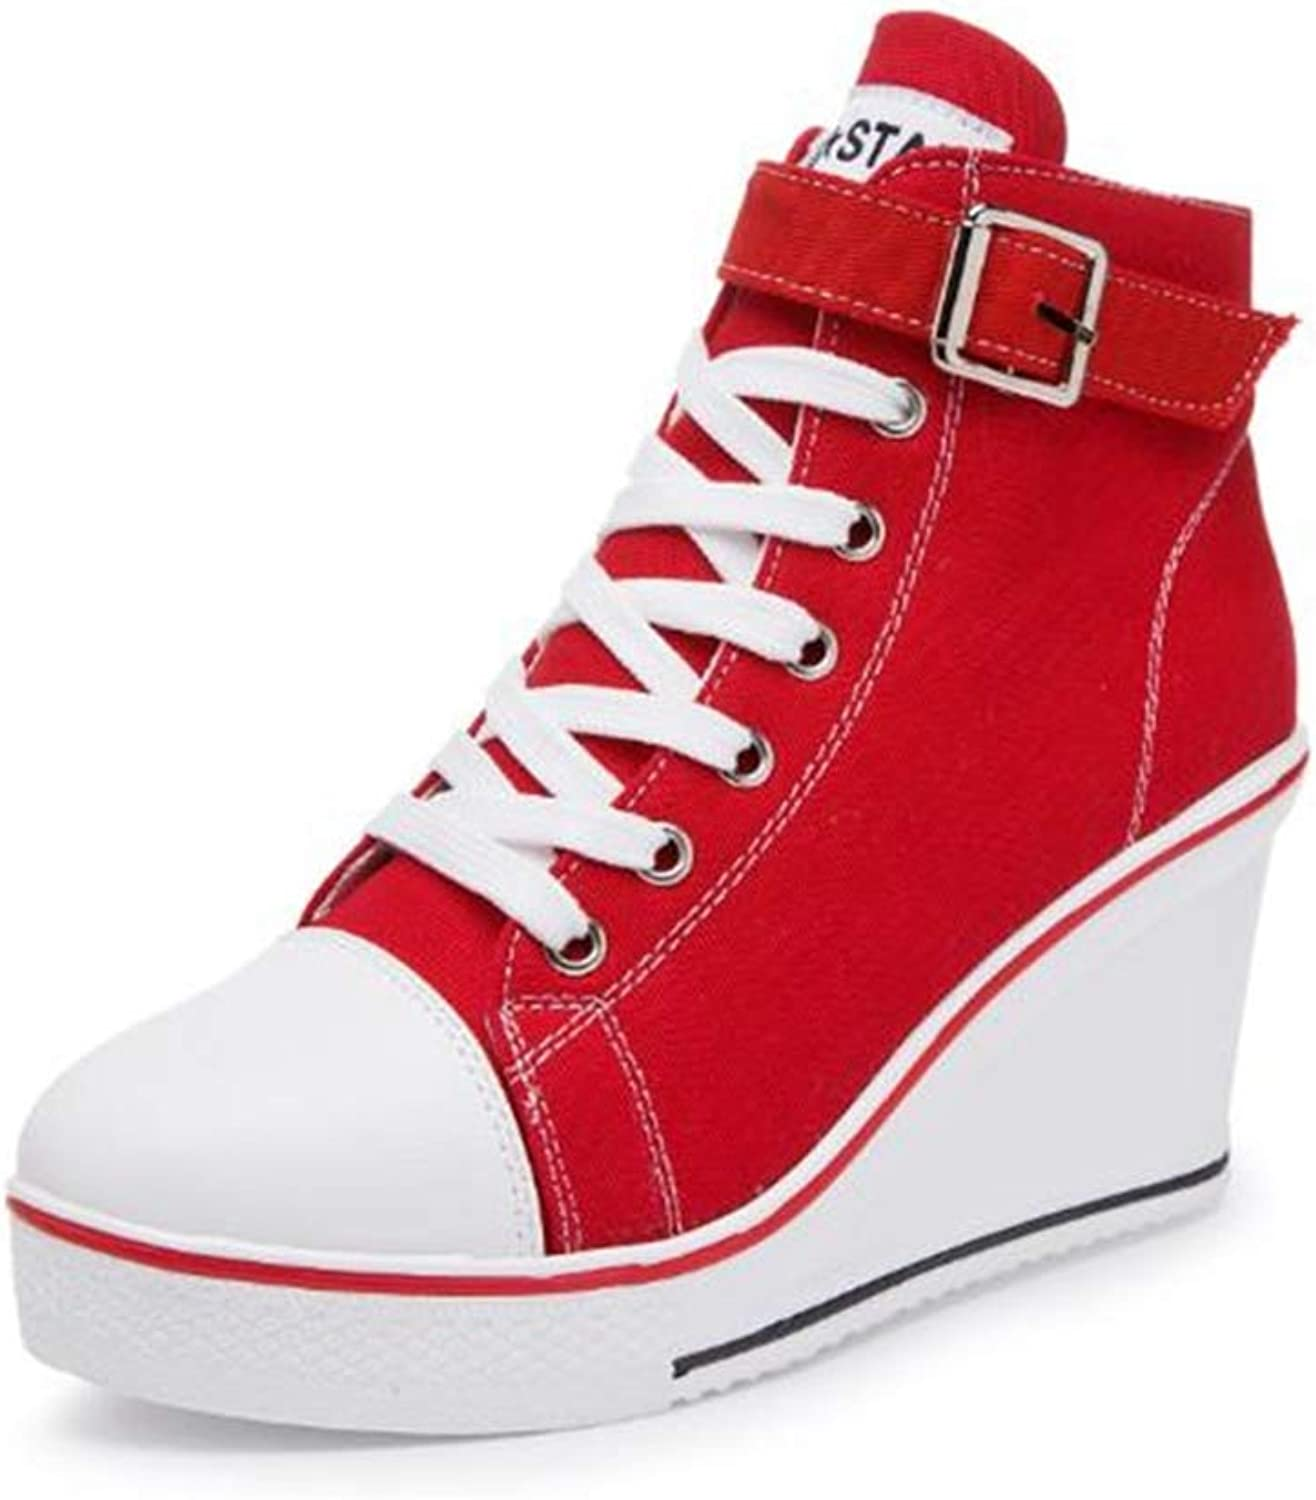 ASO-SLING Women's Platform Wedges Sneakers Casual Comfortable Height Increasing Lace up Canvas shoes with Buckle Strap